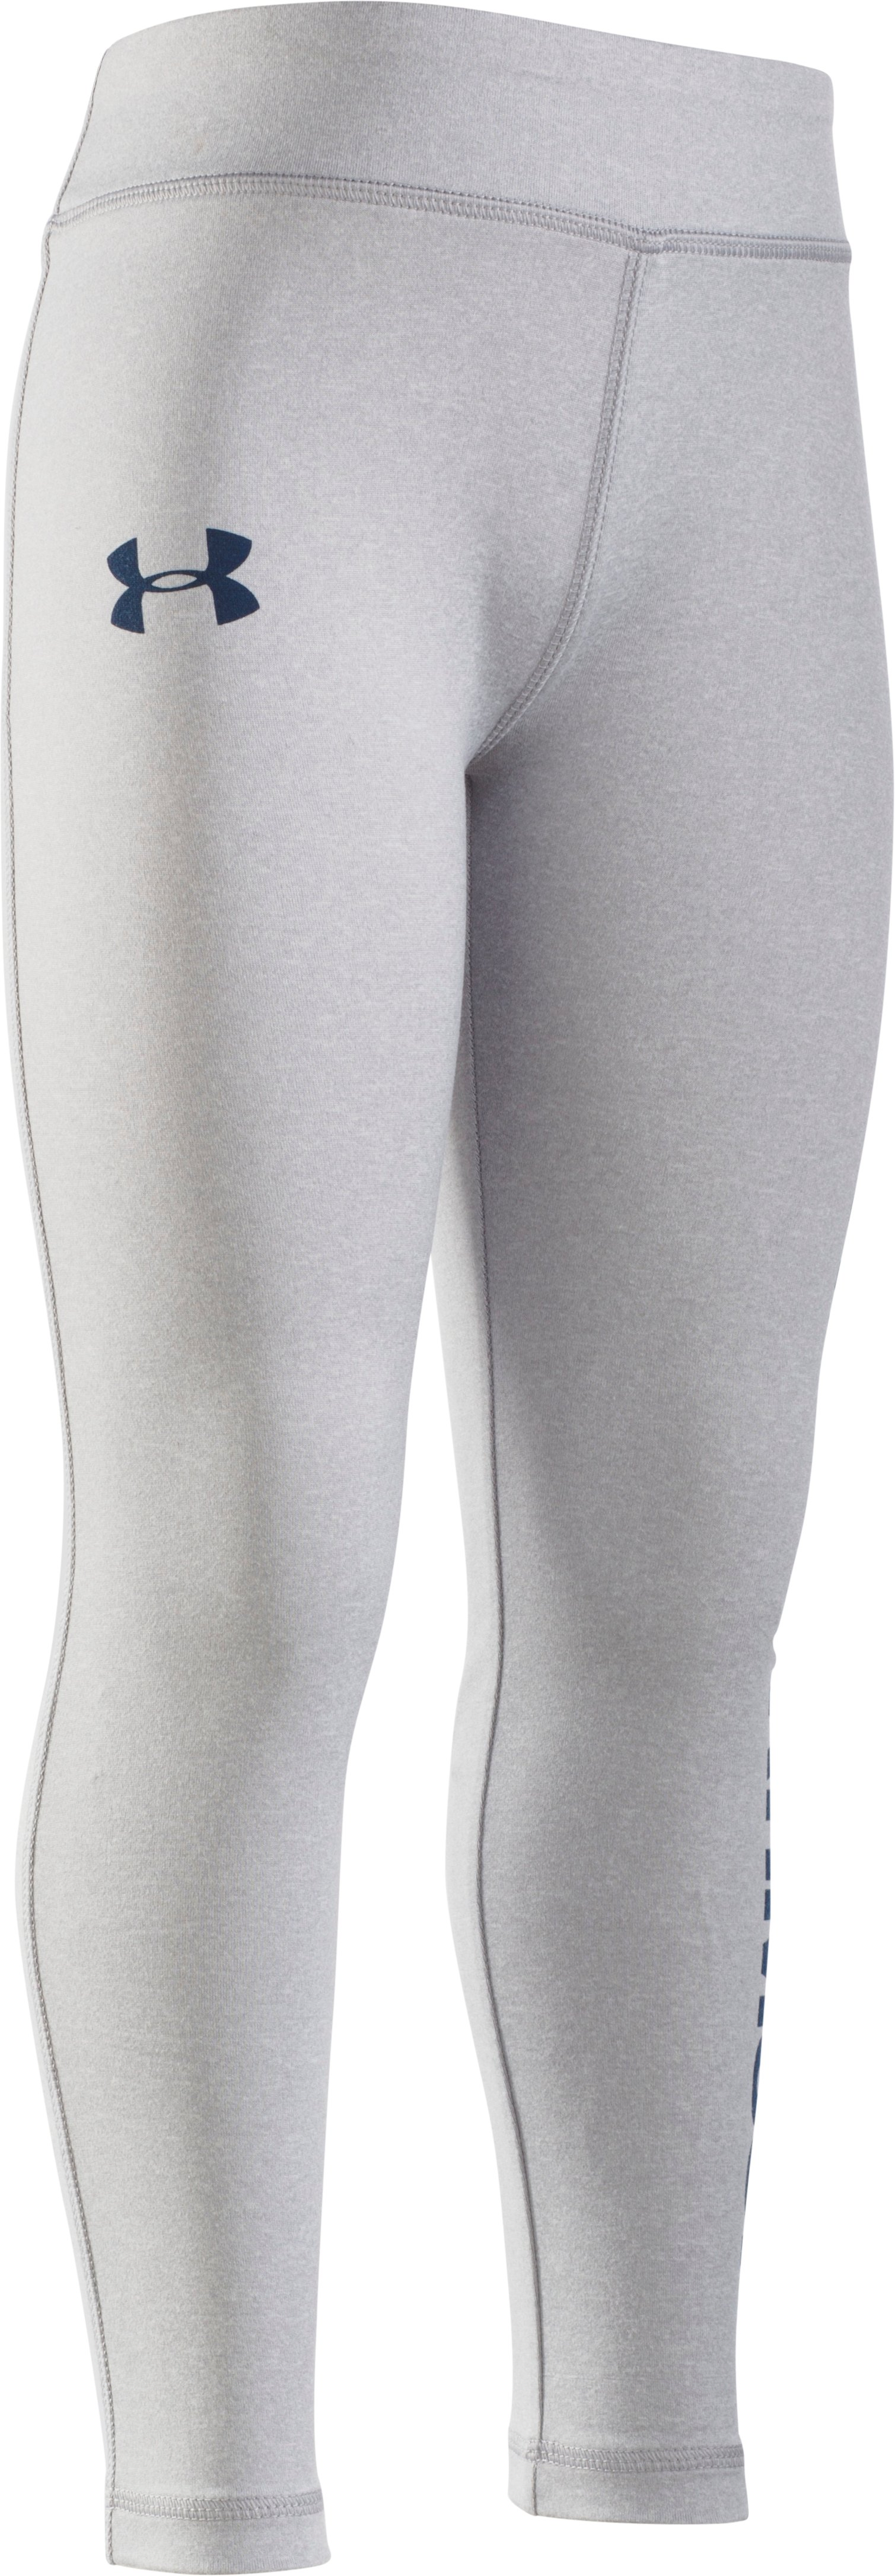 Girls' Toddler UA Favorite Graphic Leggings, AIR FORCE GRAY HEATHER, Laydown